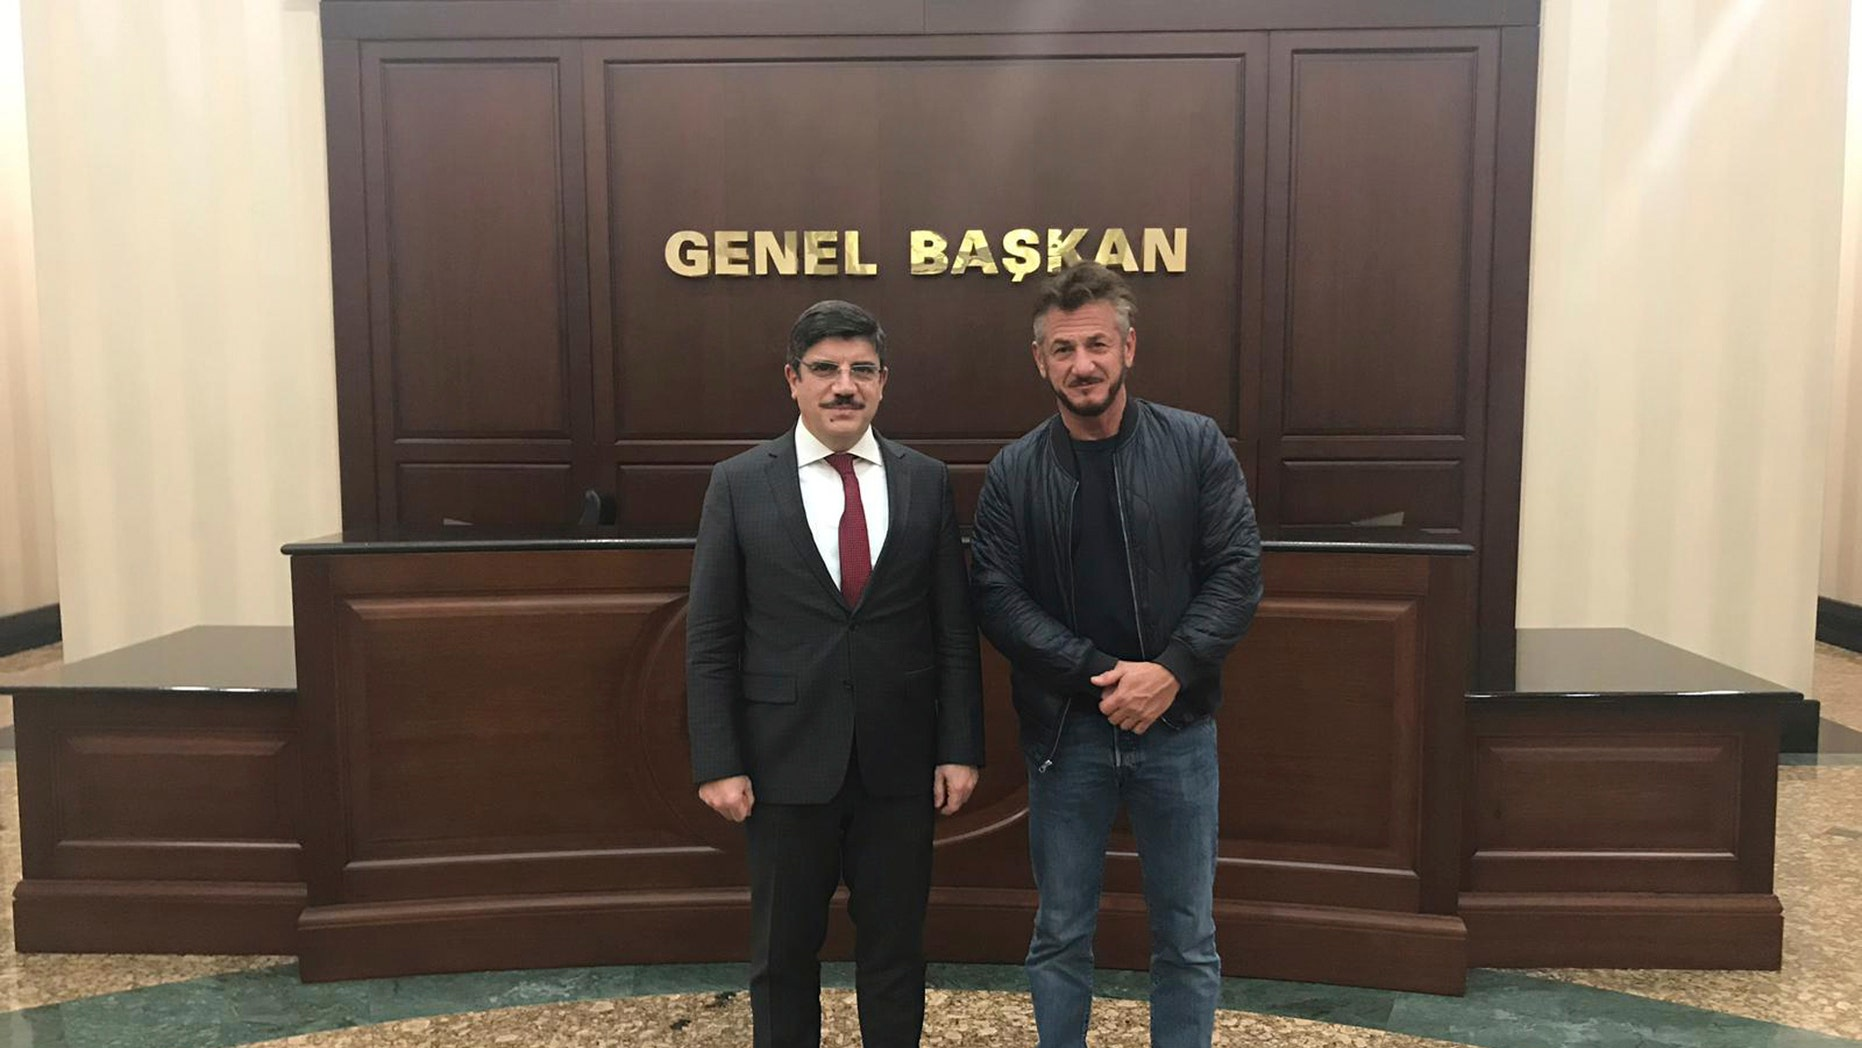 Yasin Aktay an adviser to Turkey's President Recep Tayyip Erdogan with US actor Sean Penn in Ankara Turkey. Penn is in Turkey working on a documentary about the slaying of journalist Jamal Khashoggi at the Saudi consulate on Oct. 2 in Istanbul